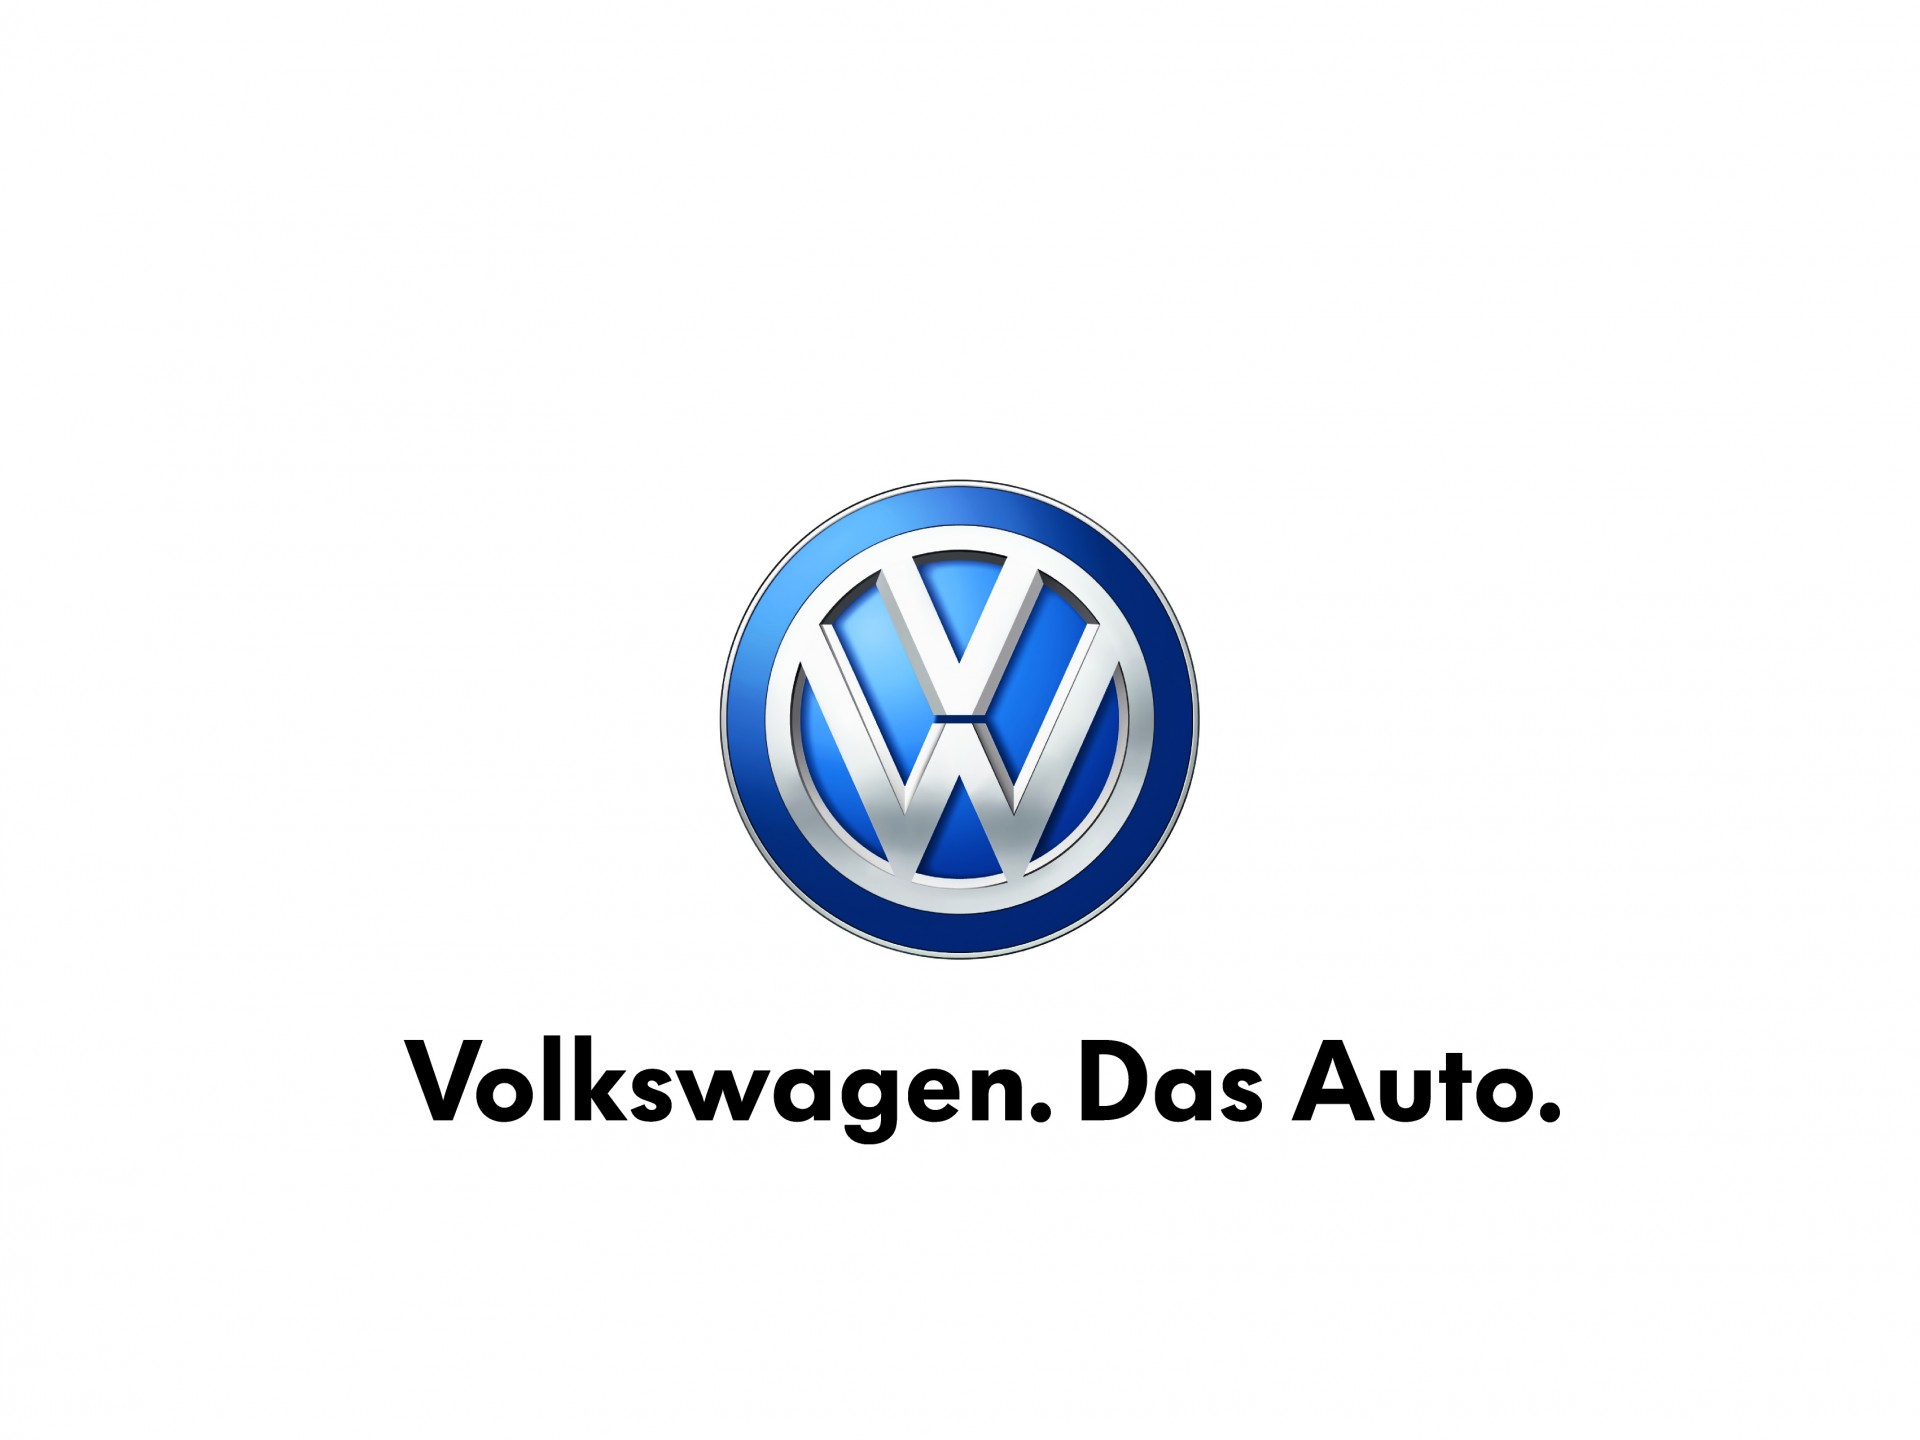 1: Make a List Expression Project 54: Volkswagen